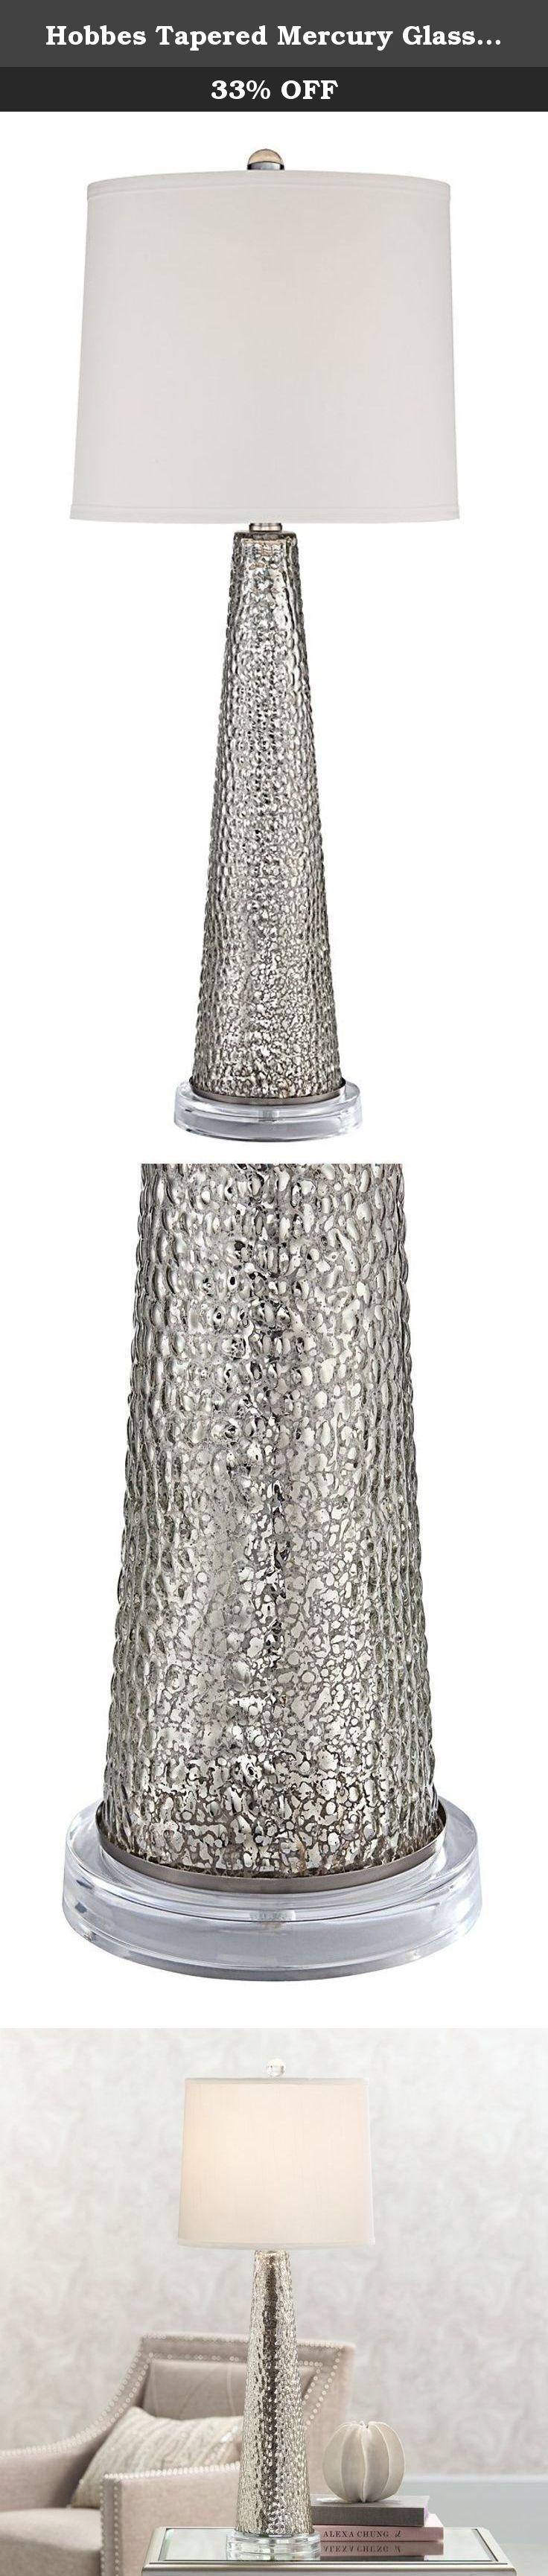 Hobbes tapered mercury glass table lamp freshen up any